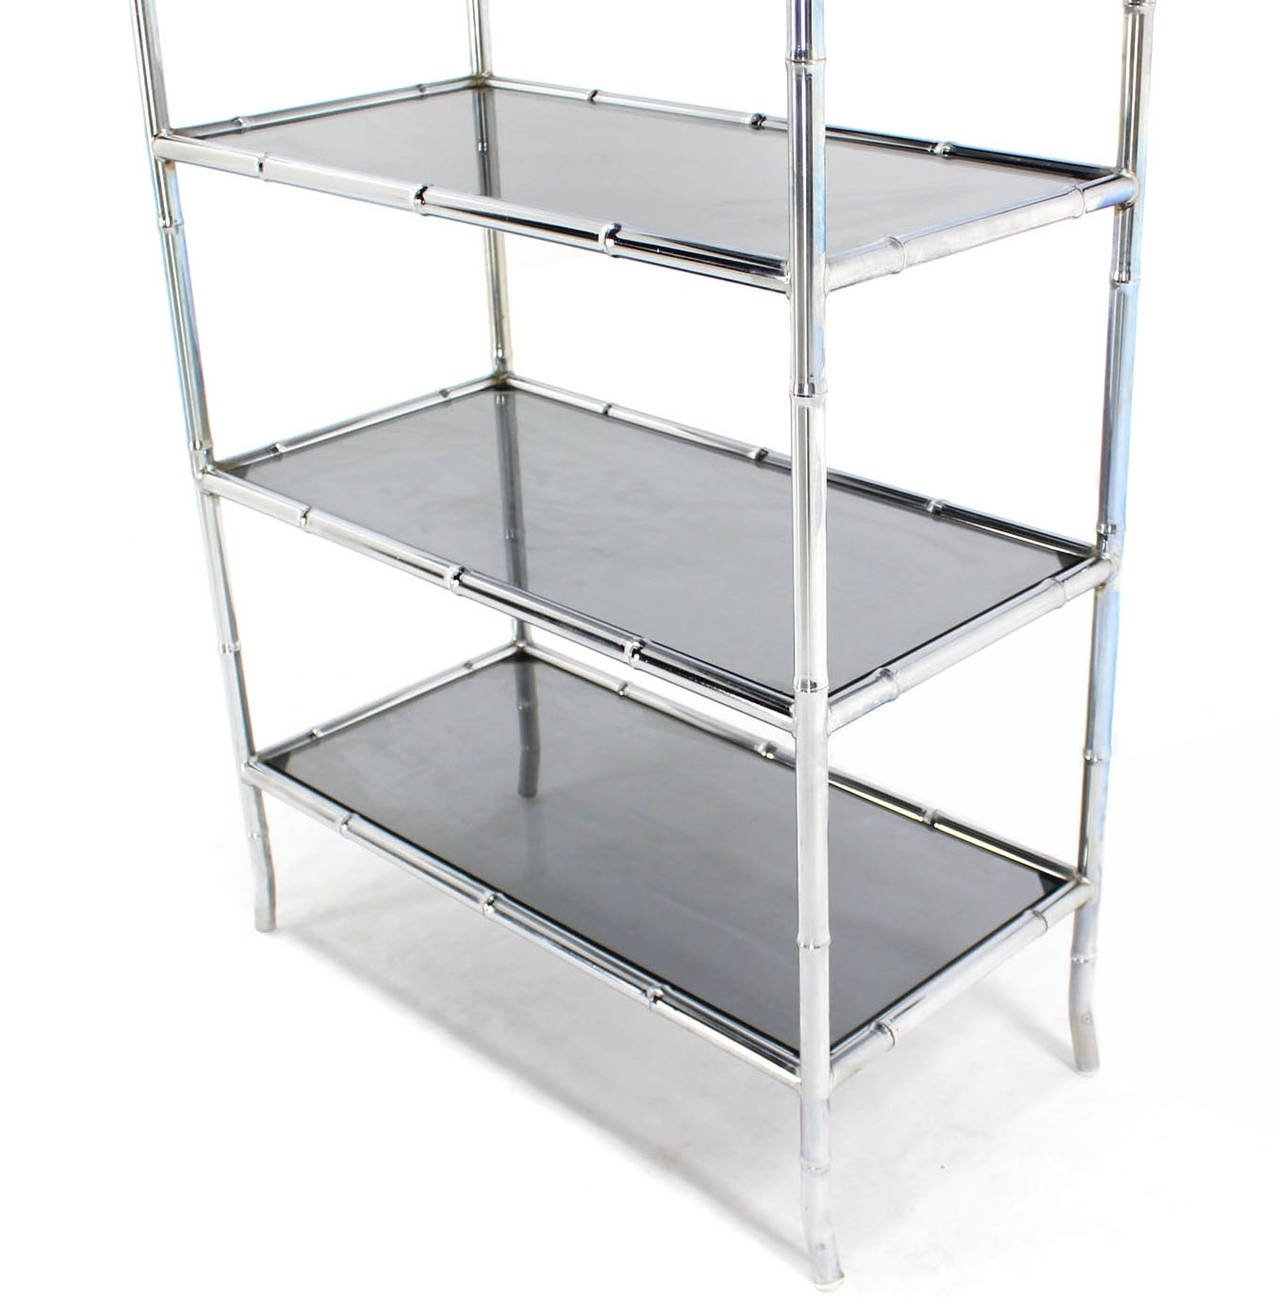 Chrome Faux Bamboo Etagere Unit With Smoked Glass Shelves At 1stdibs Regarding Smoked Glass Shelves (View 11 of 15)